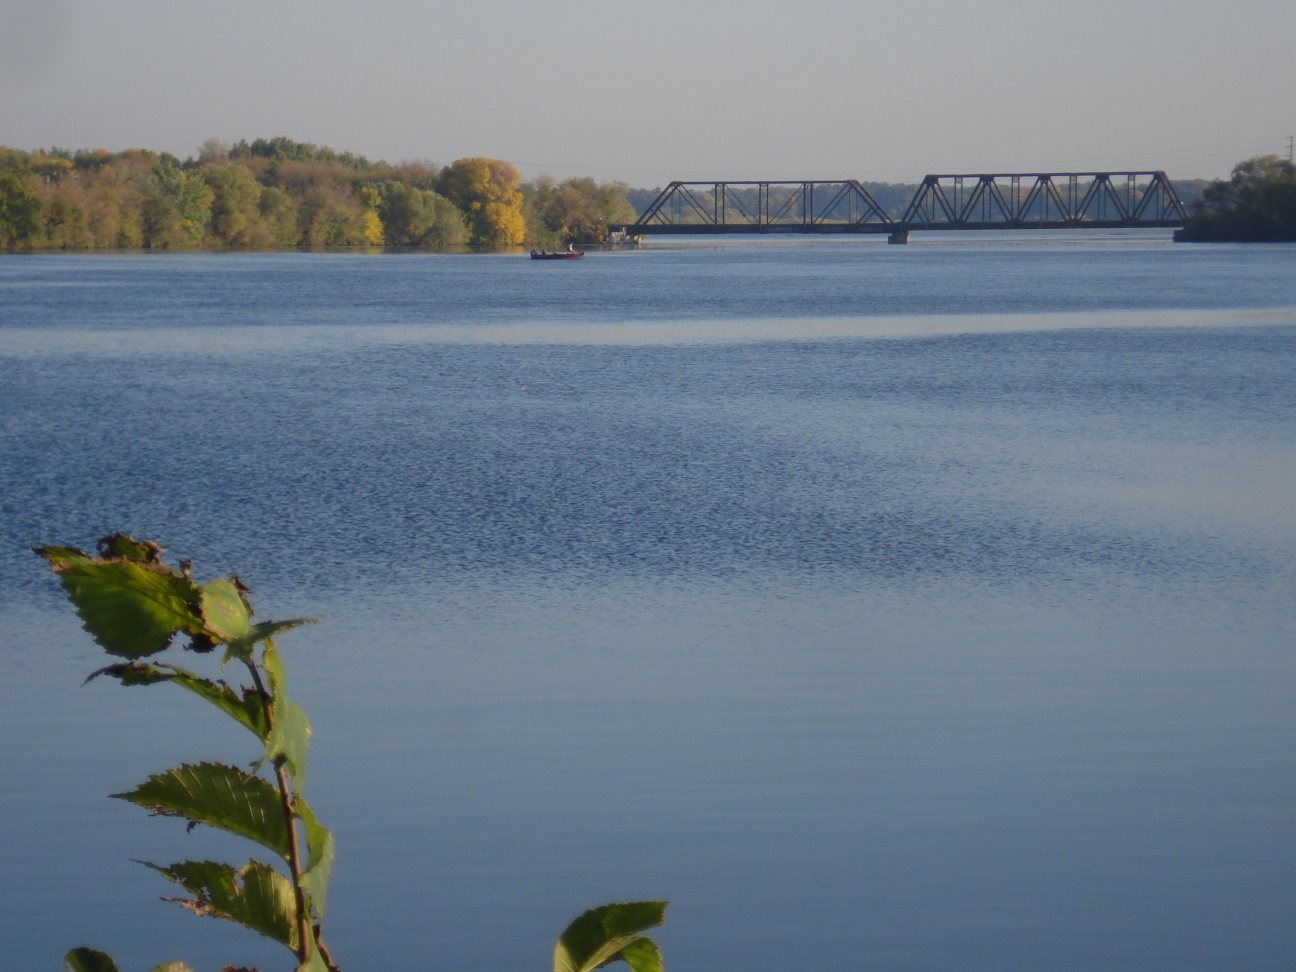 North train trestle, Little Falls, MN, photo by Mary E Warner, Sept 2014